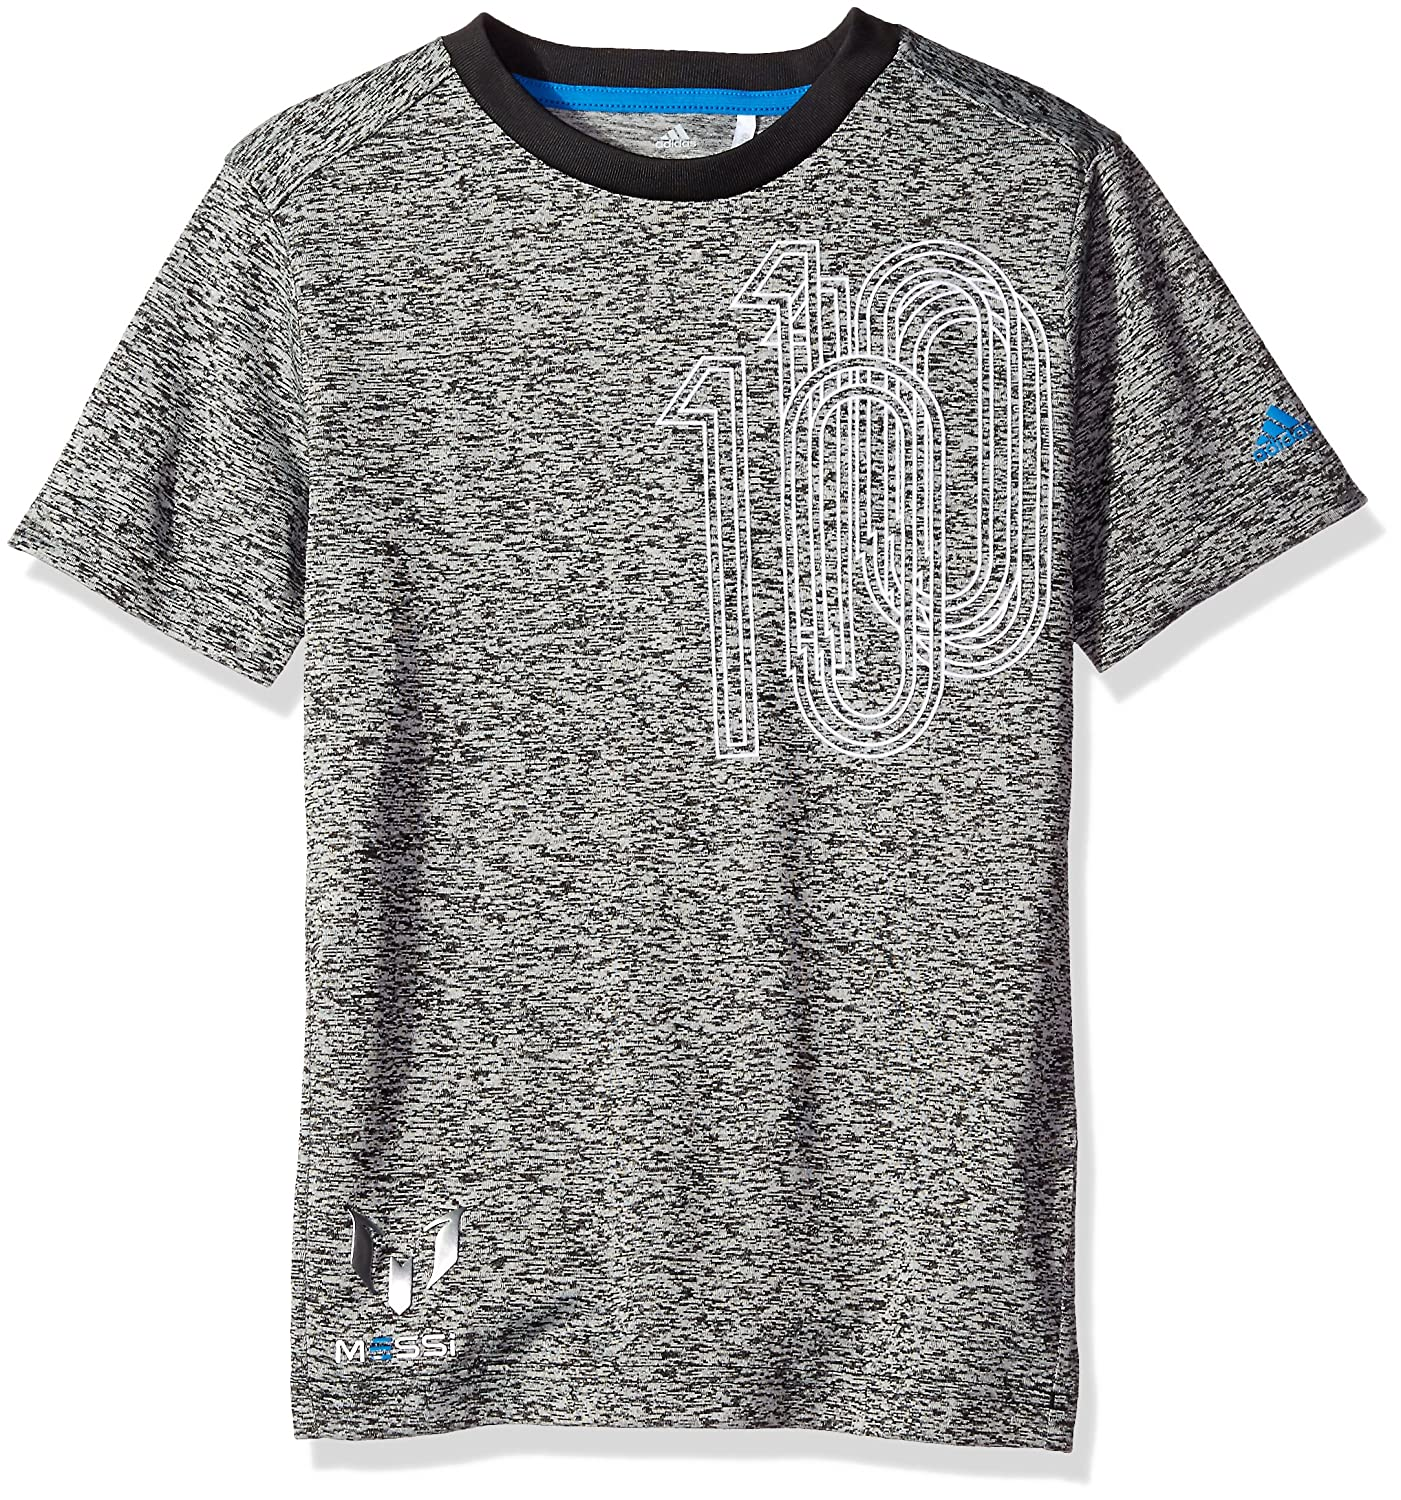 Adidas Jugend Fußball Messi Icon Tee